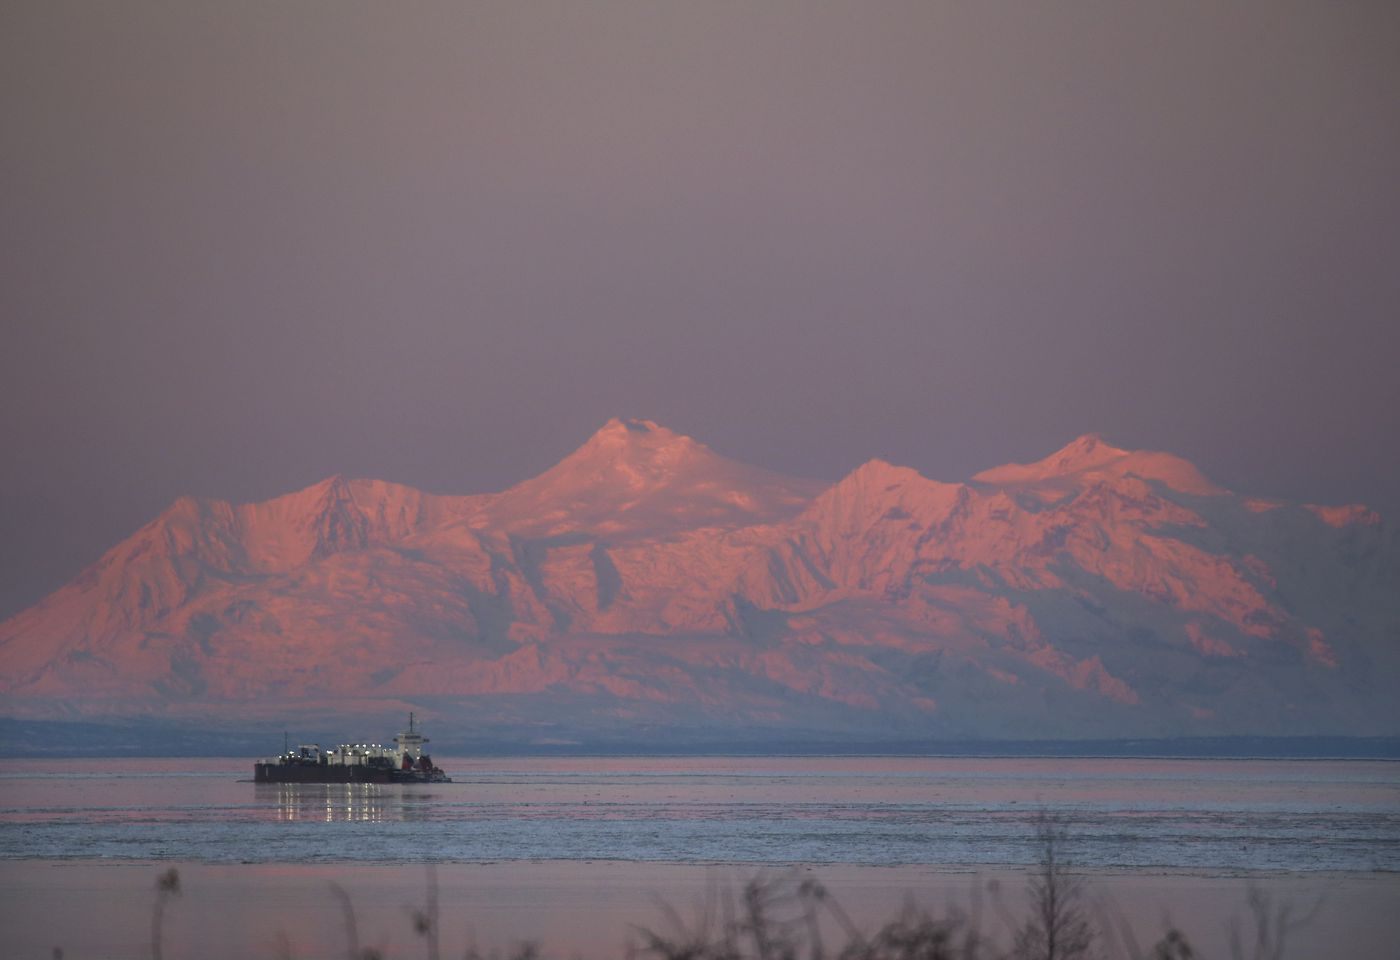 NOVEMBER 9. The articulated Tug-Barge Aveogan/Oliver Leavitt moves south along the Knik Arm after departing Port of Alaska around 8:25 a.m. as the sun rises, highlighting the Tordrillo Mountains. (Emily Mesner / ADN)